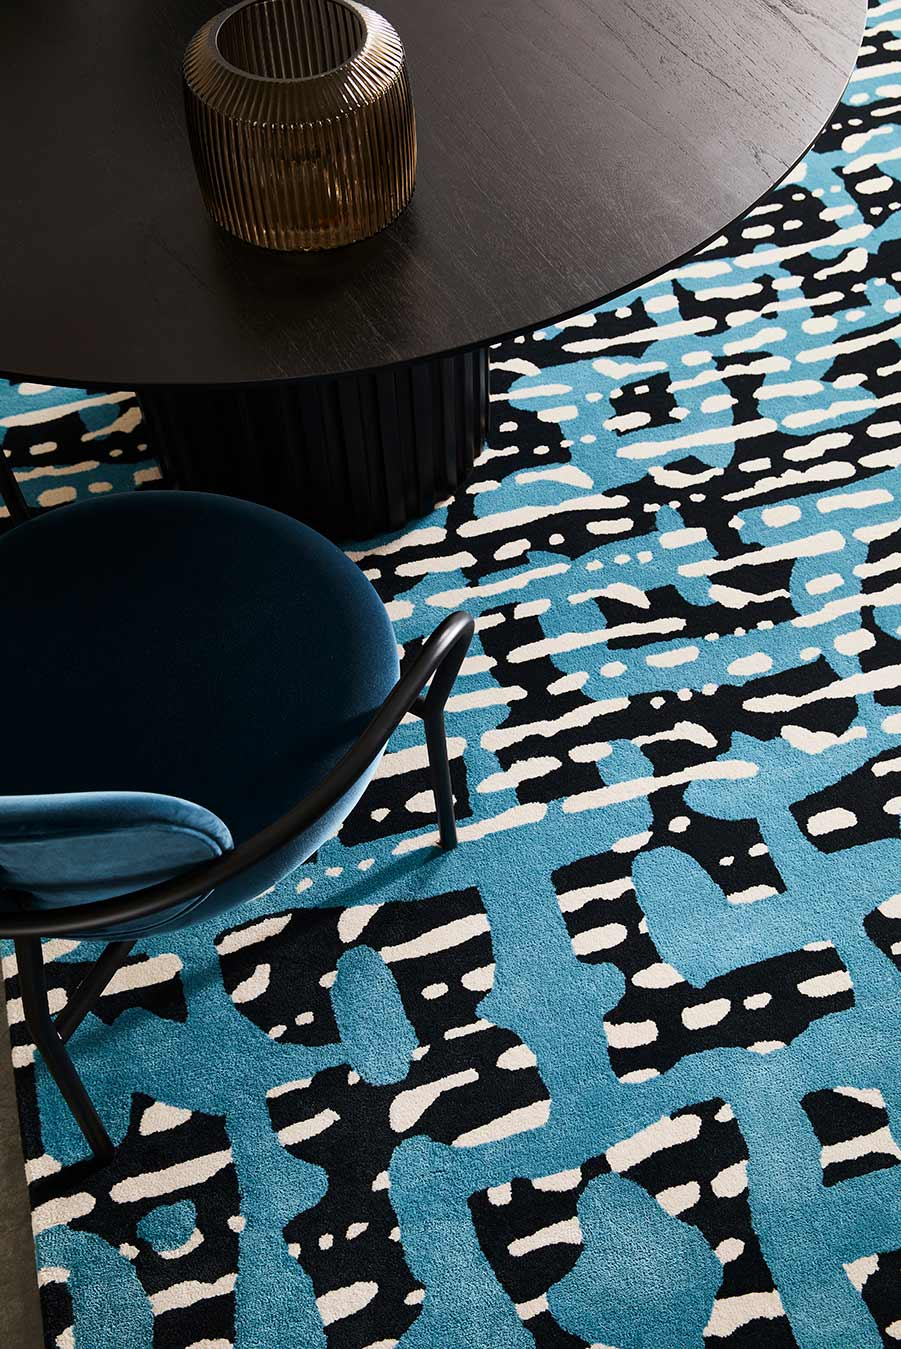 Detailed view of modern, striped Evie rug in blue and navy.